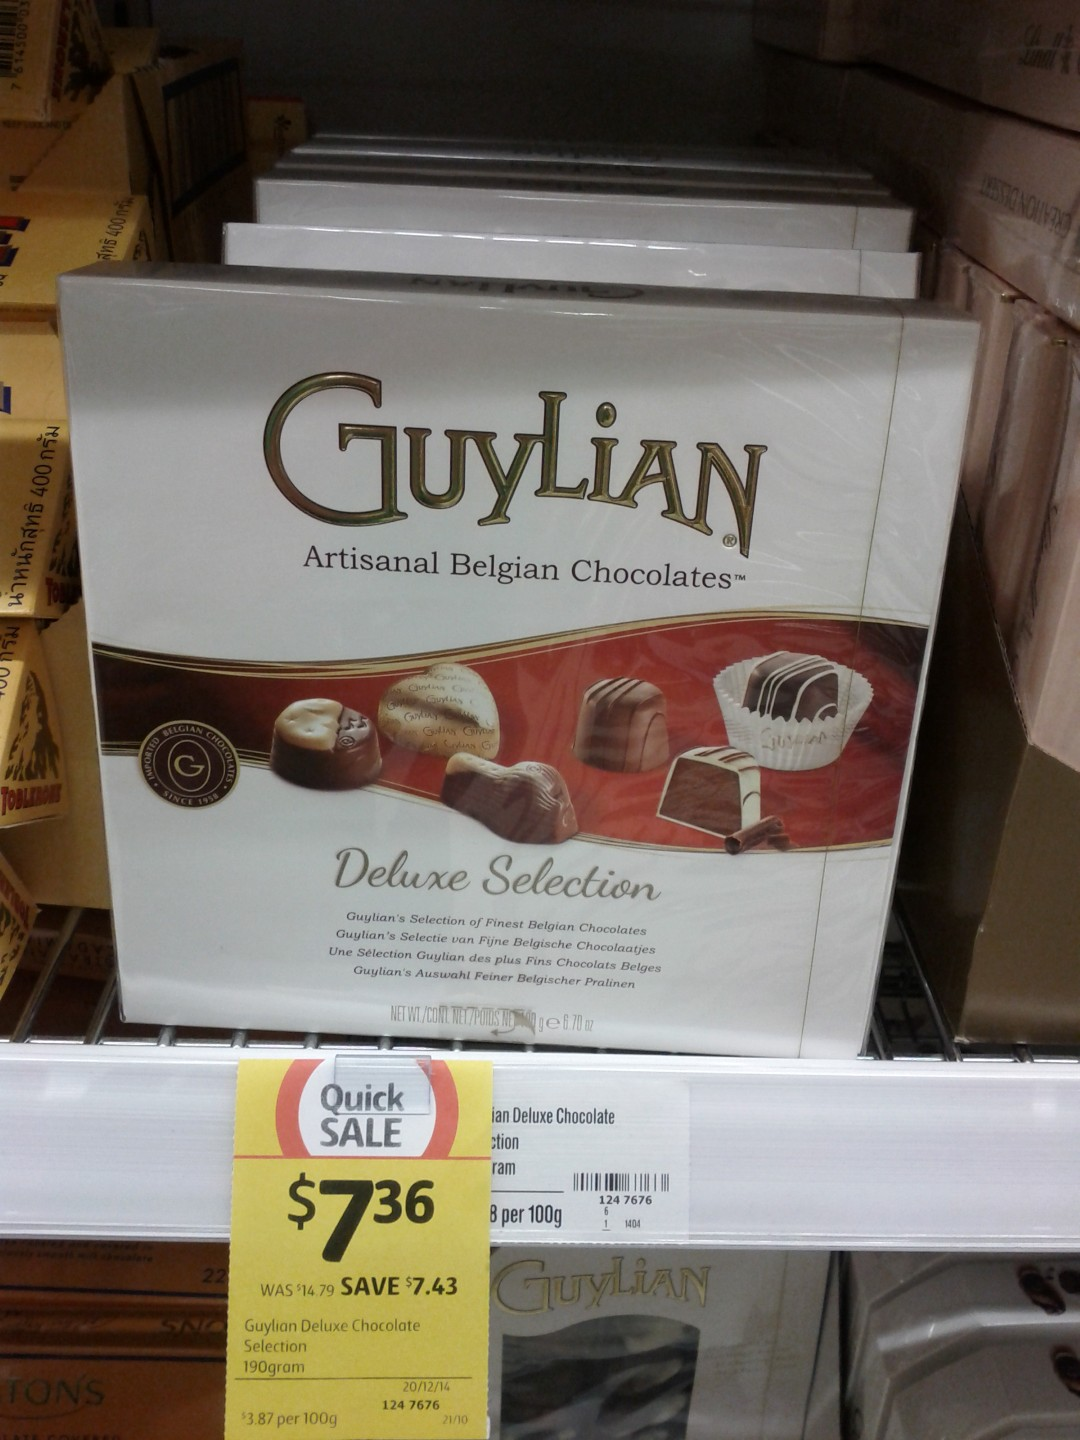 Guylian 190g Deluxe Selection